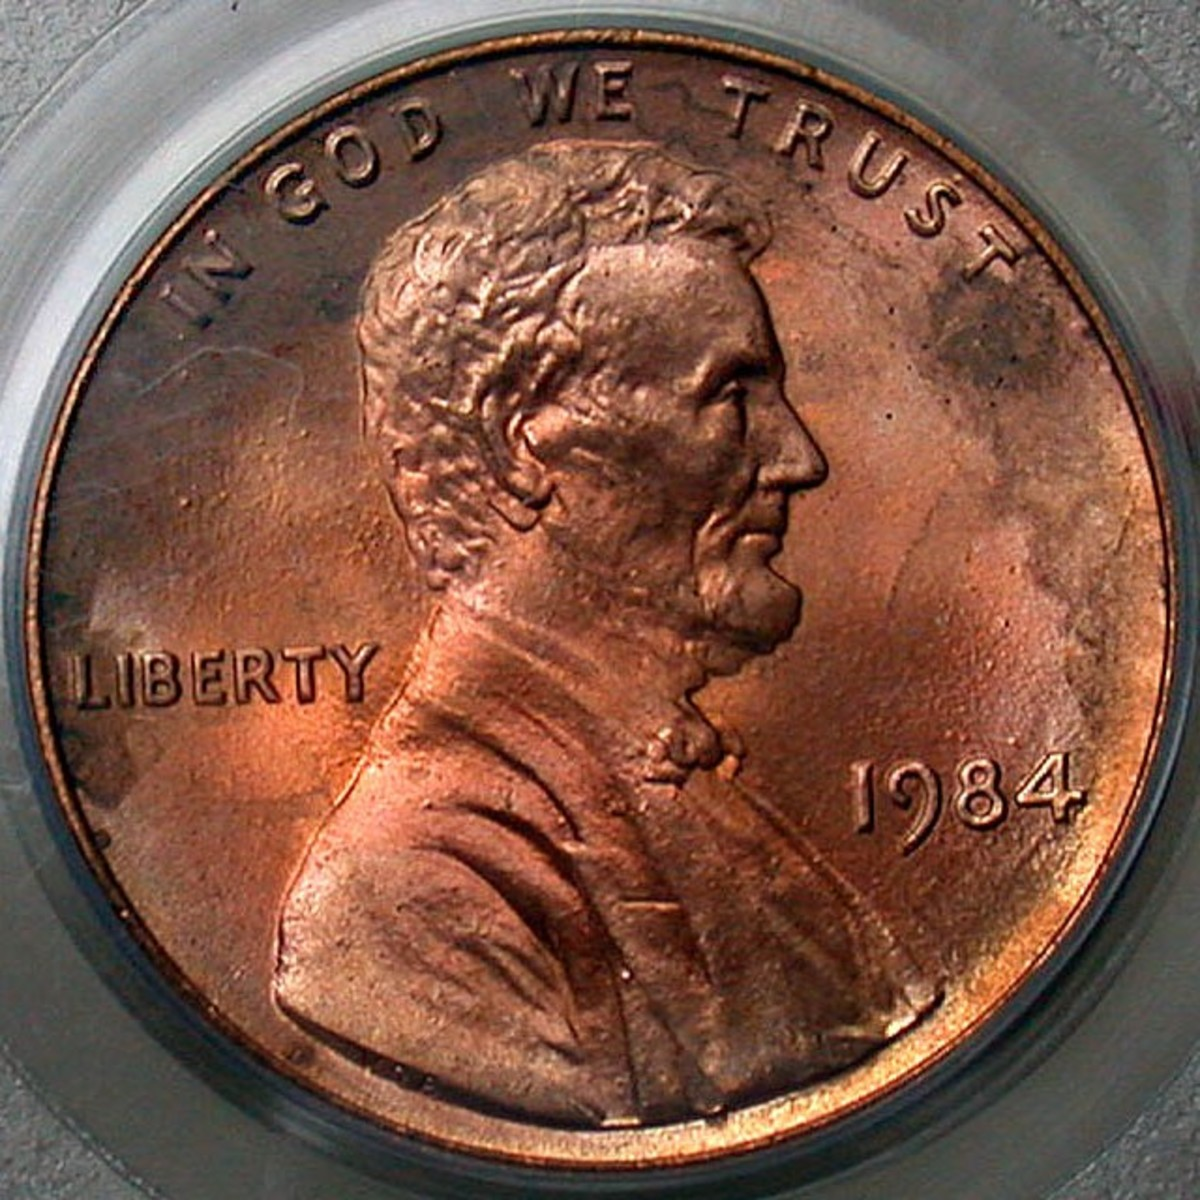 1984 Double Ear Lincoln Penny